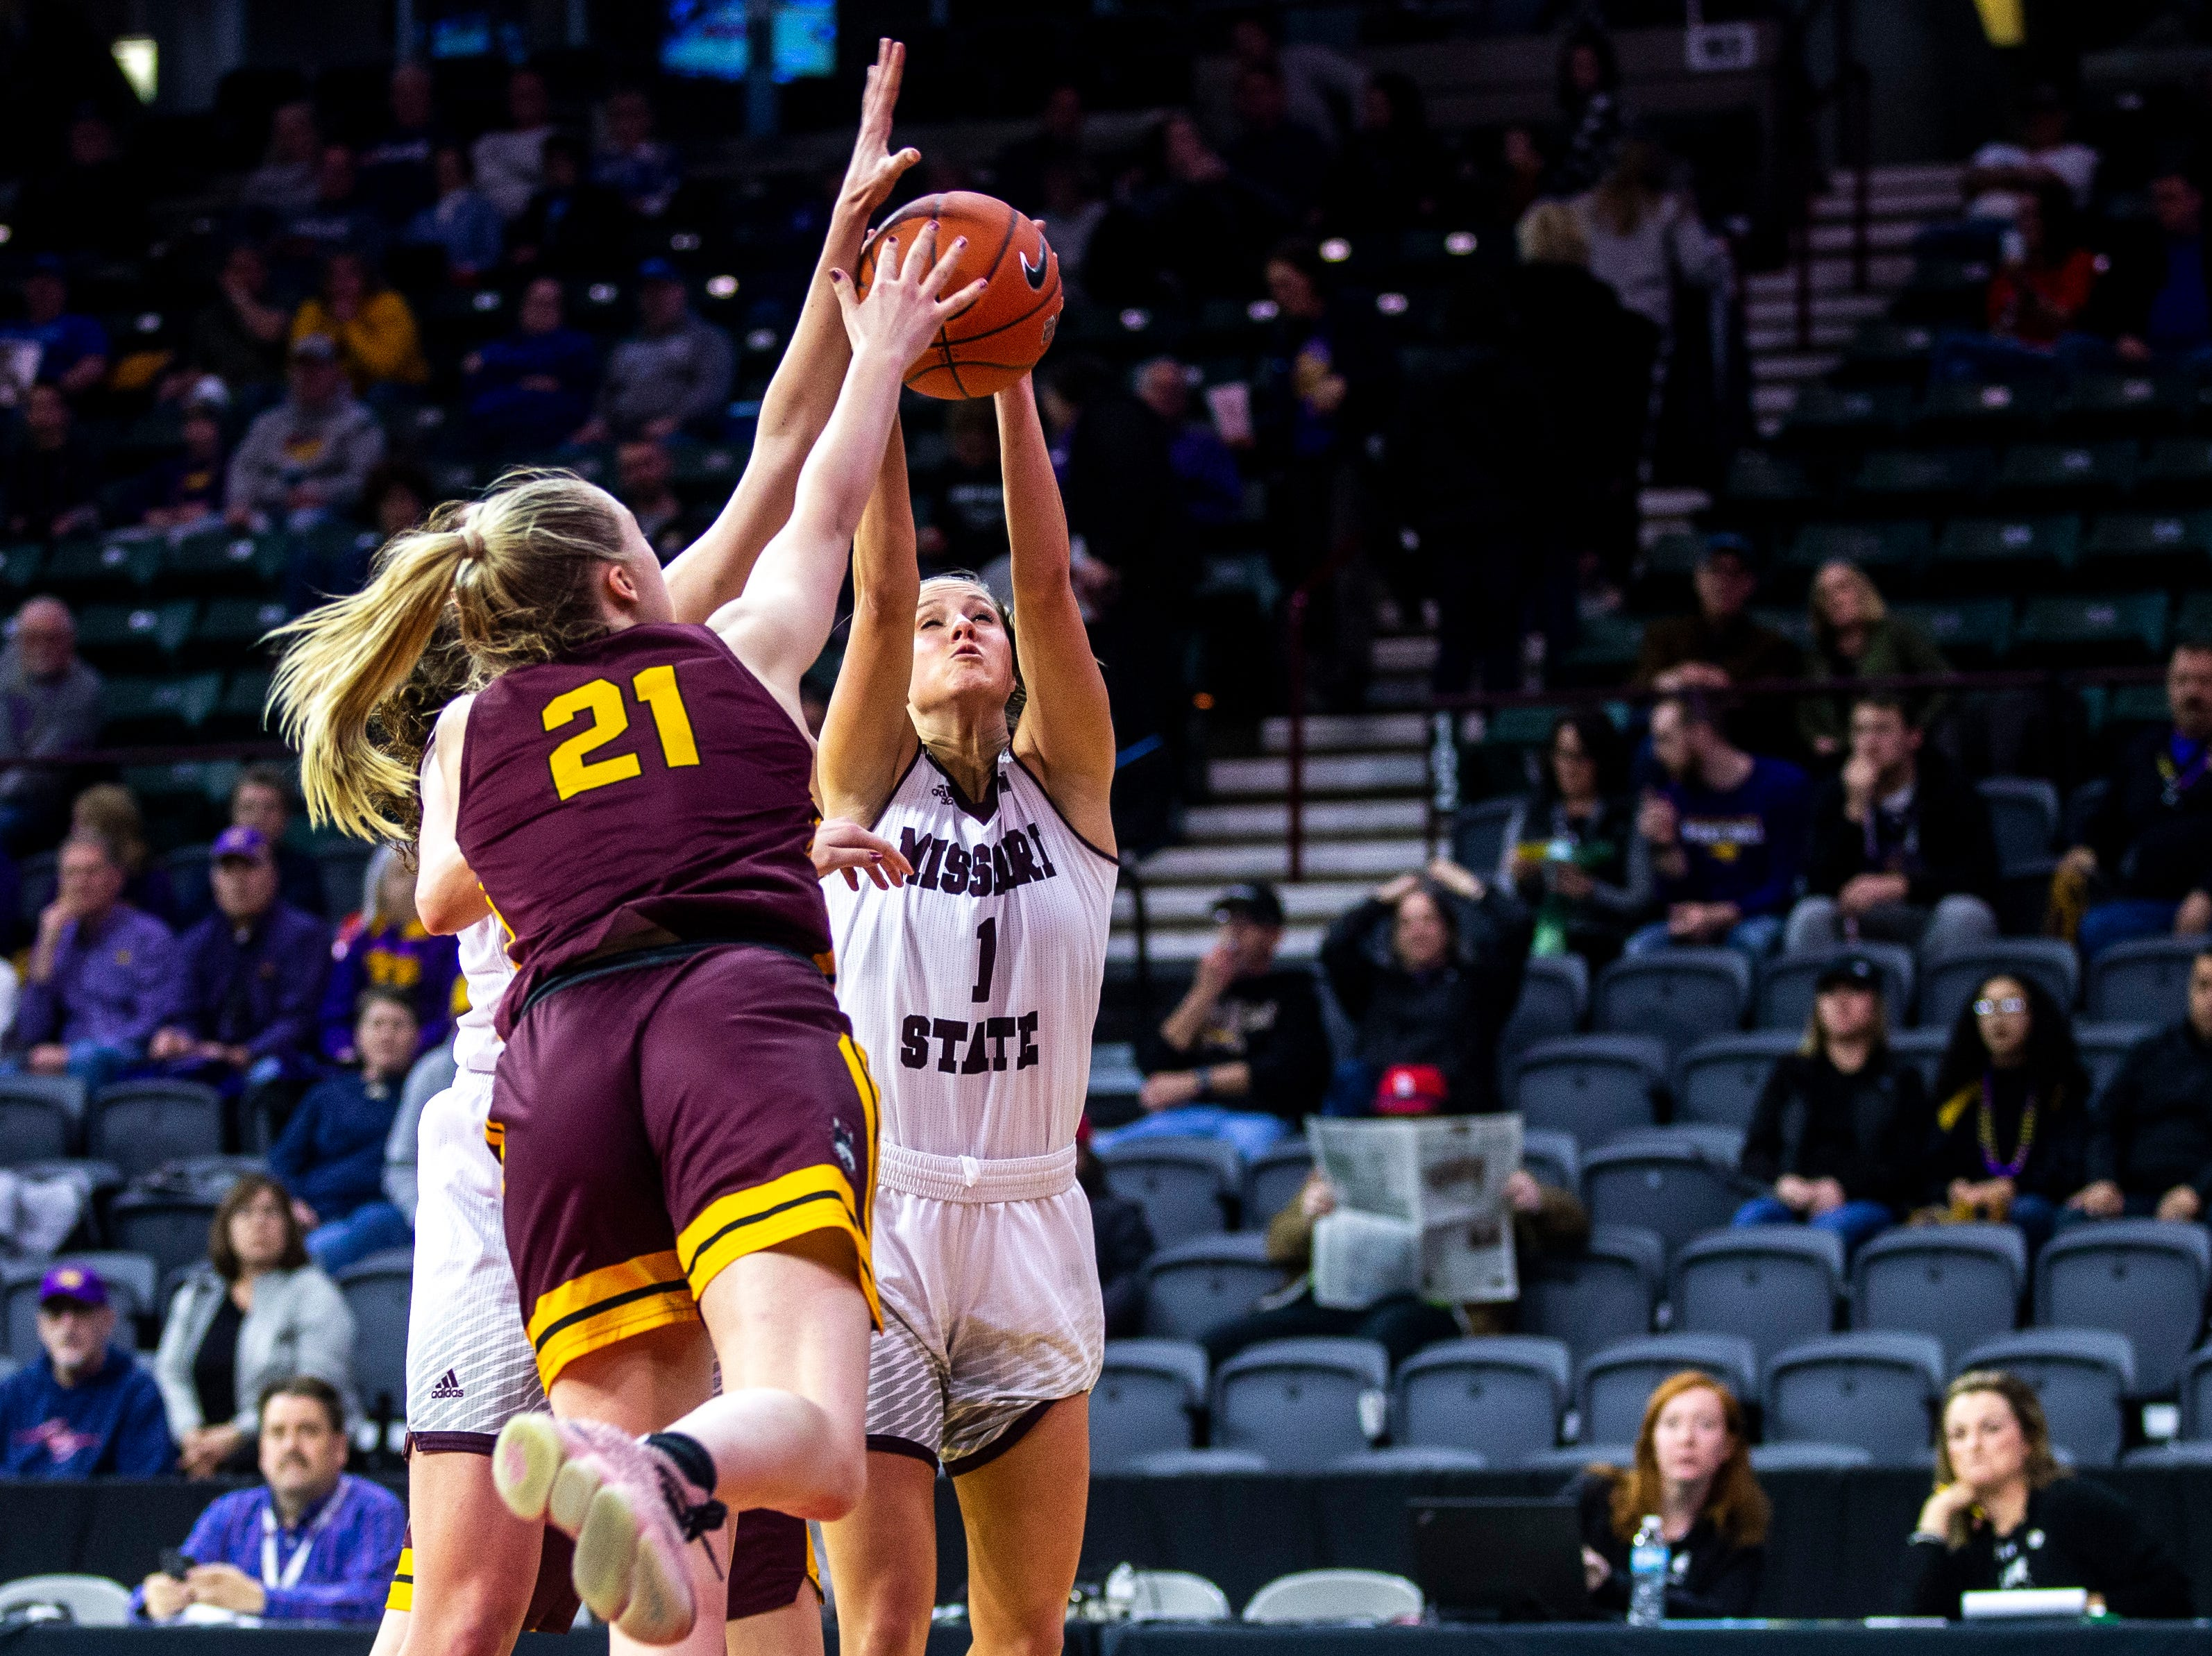 Missouri State guard Danielle Gitzen (1) grabs a rebound against Loyola (Chicago) forward Allison Day (21) during a NCAA Missouri Valley Conference women's basketball quarterfinal tournament game, Friday, March 15, 2019, at the TaxSlayer Center in Moline, Illinois.